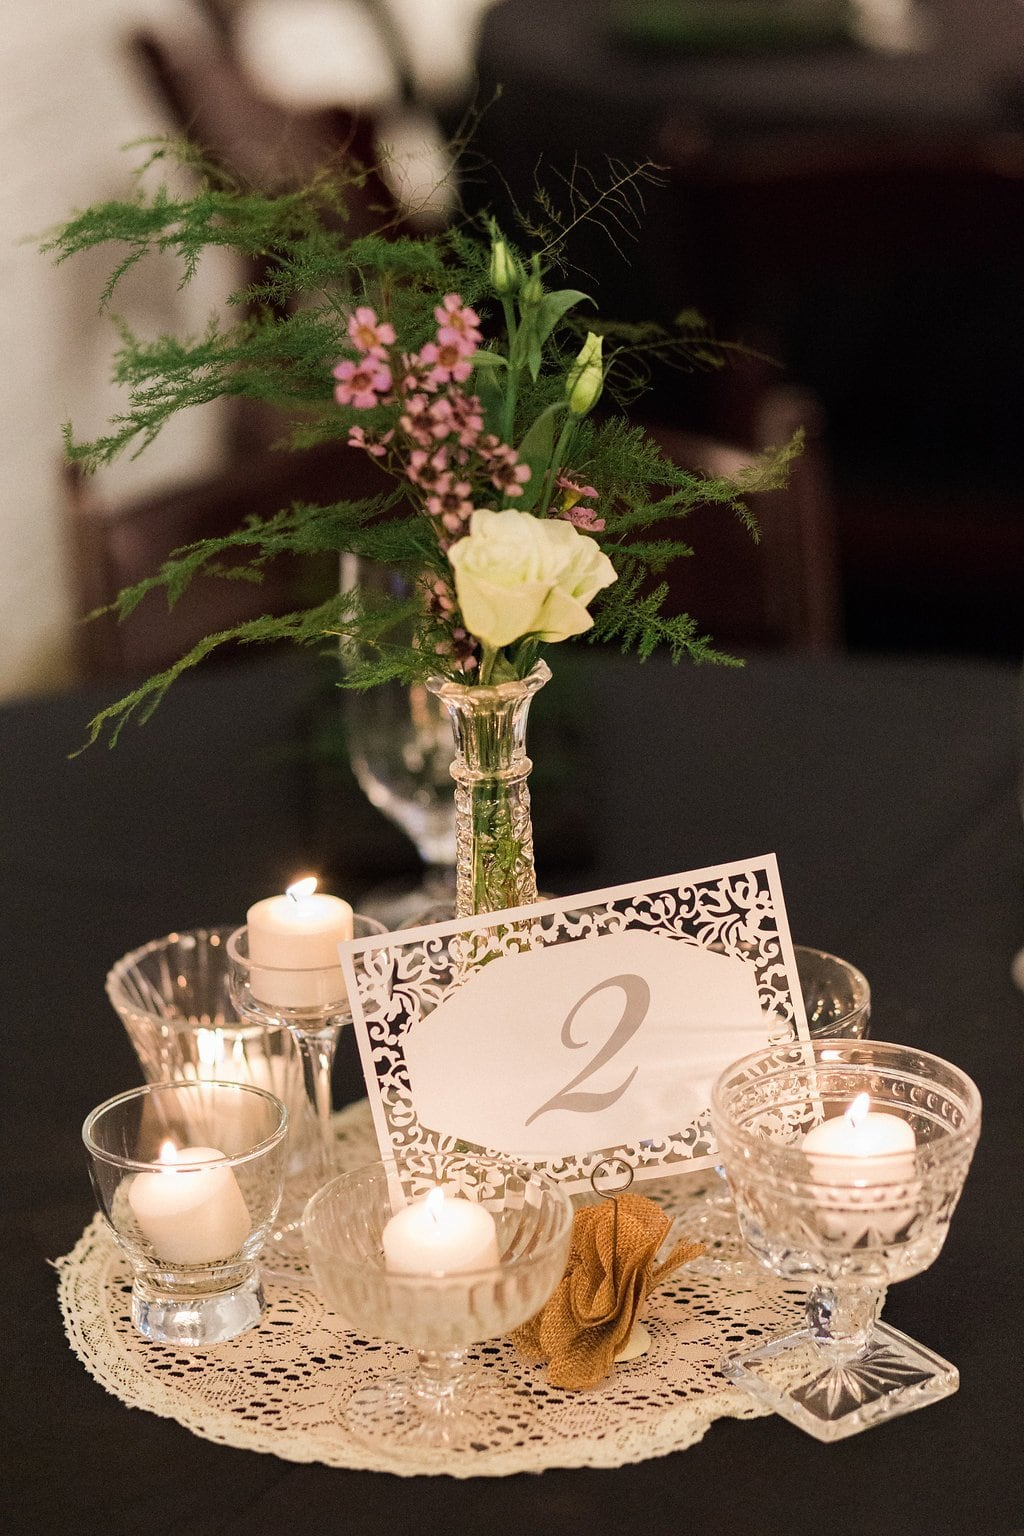 White paper cut table numbers with lace and candle decor